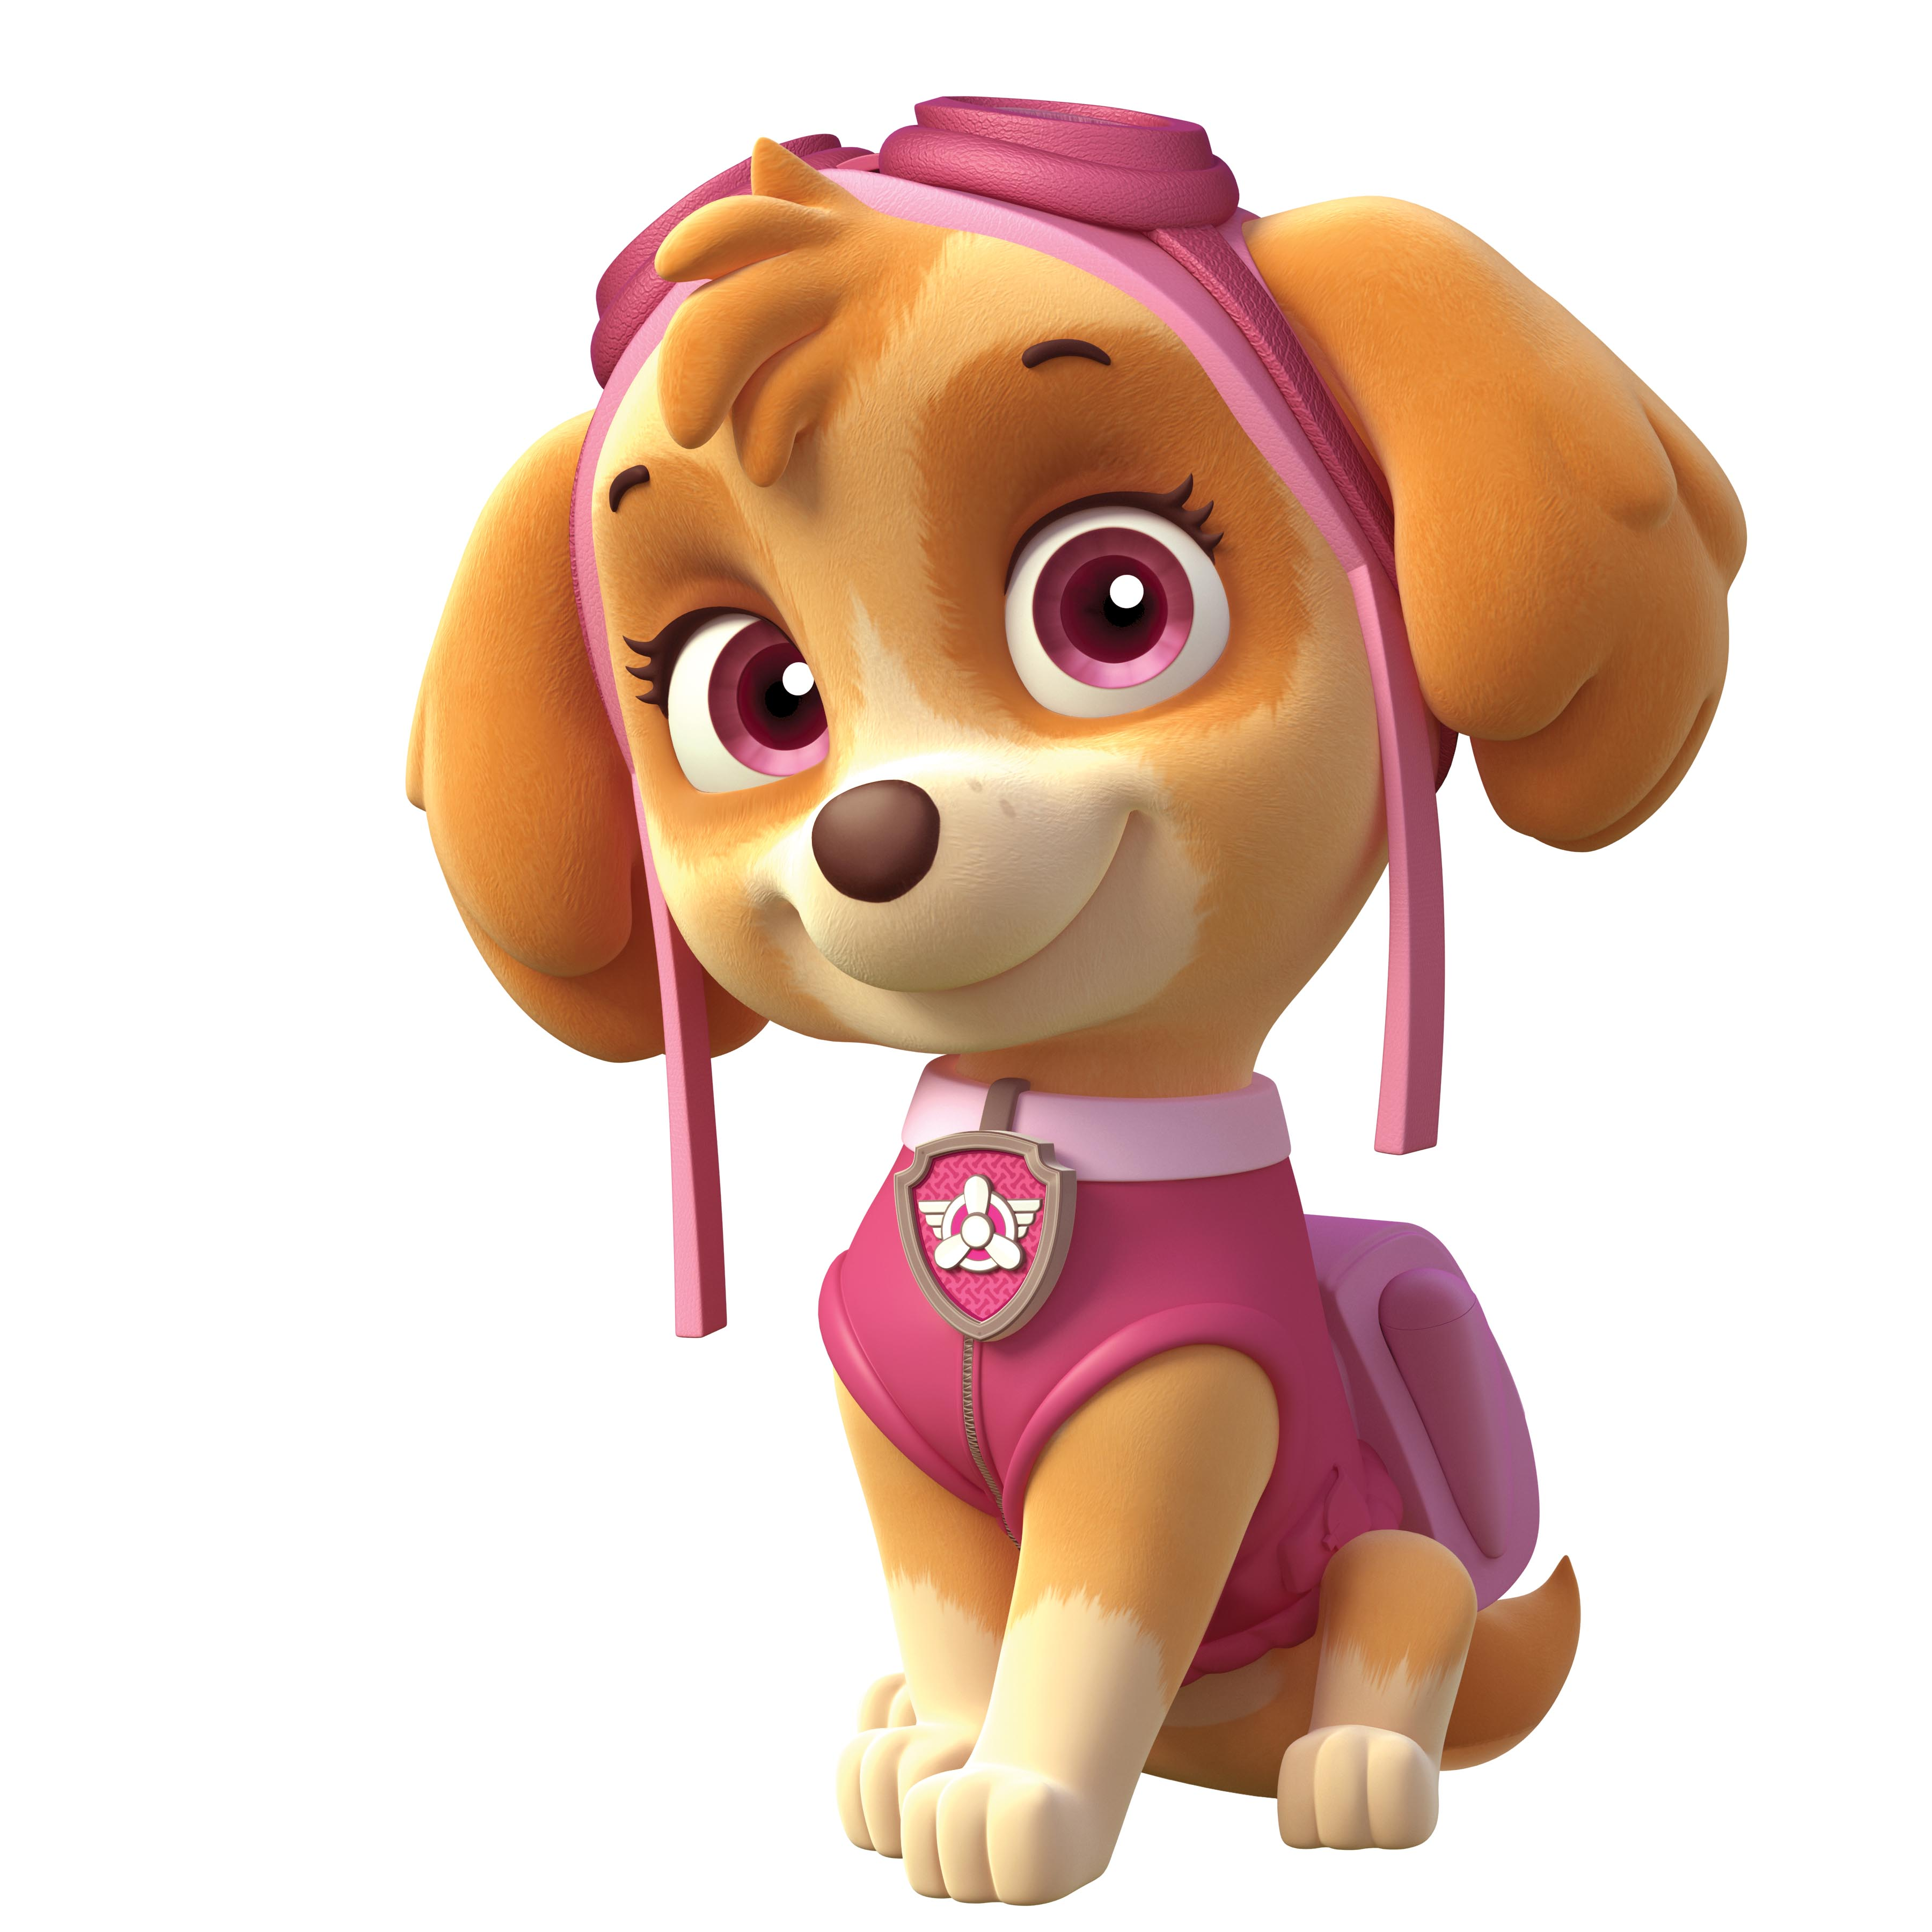 Paw patrol rubble clipart clip royalty free Paw patrol clipart skye - ClipartFest clip royalty free